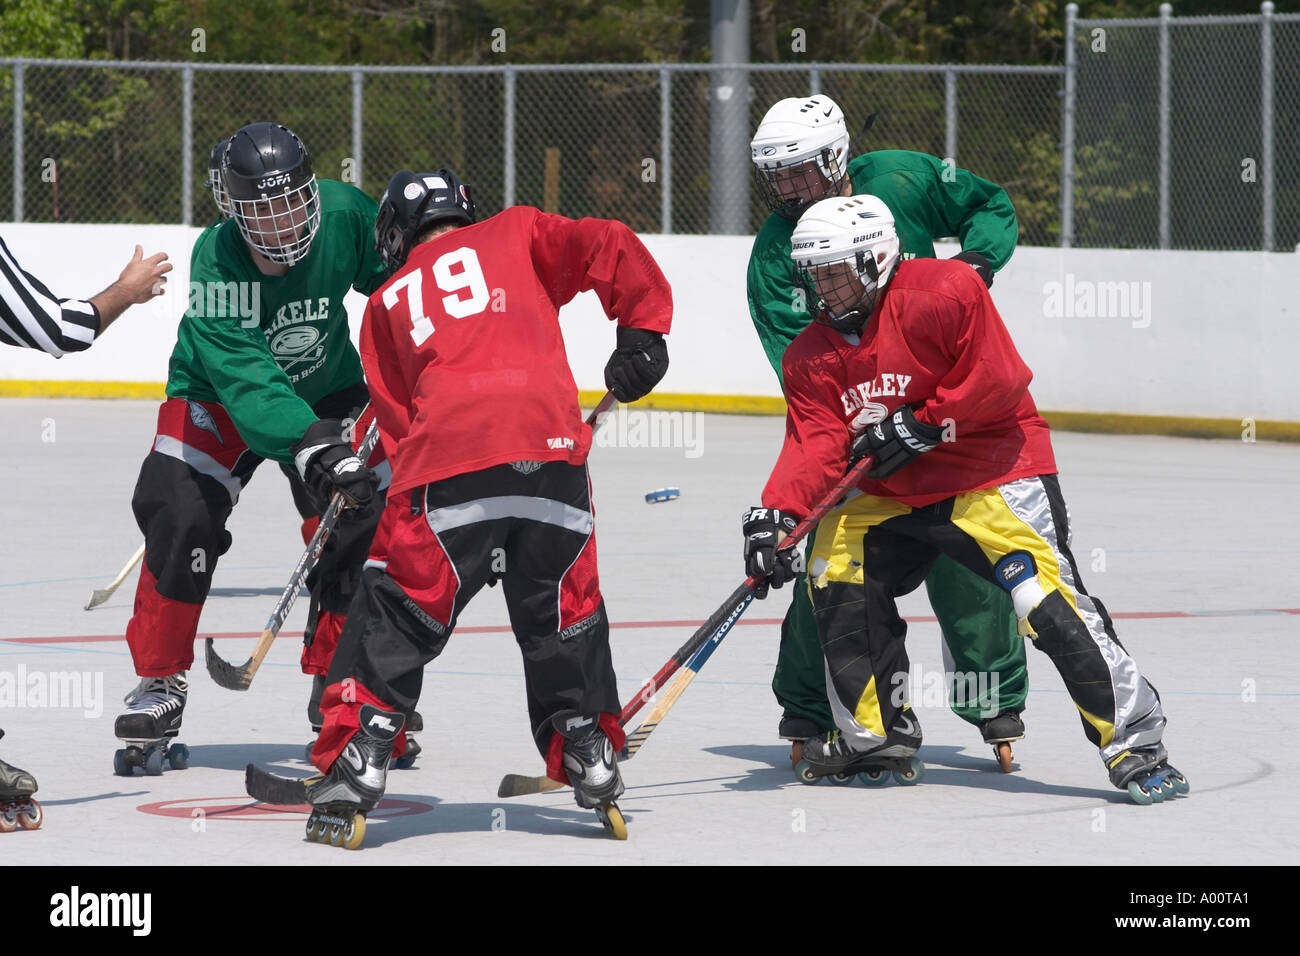 Roller Hockey Faceoff - Stock Image